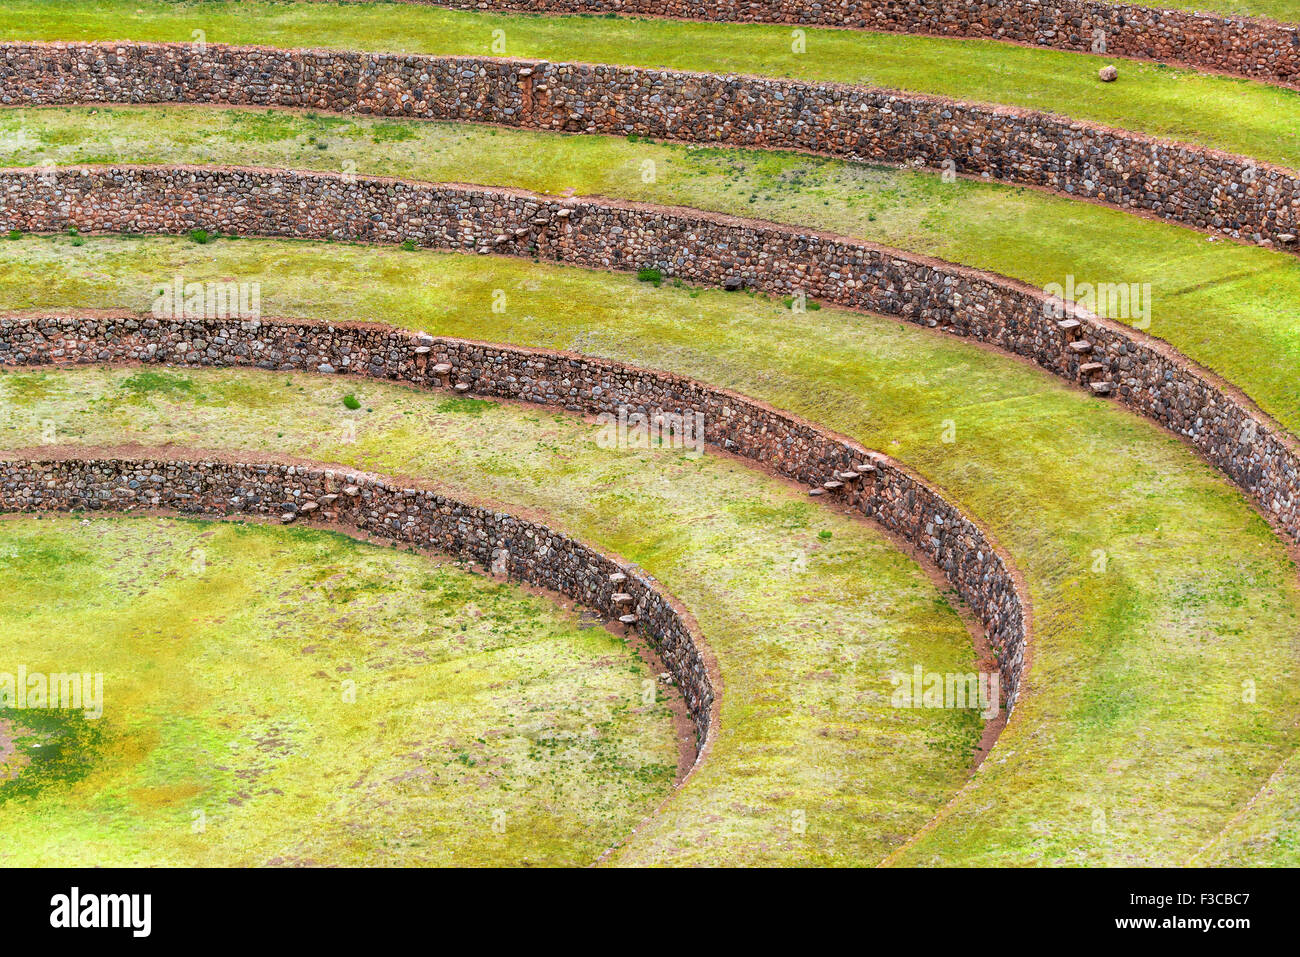 Closeup view of the Incan ruins of Moray in Peru - Stock Image